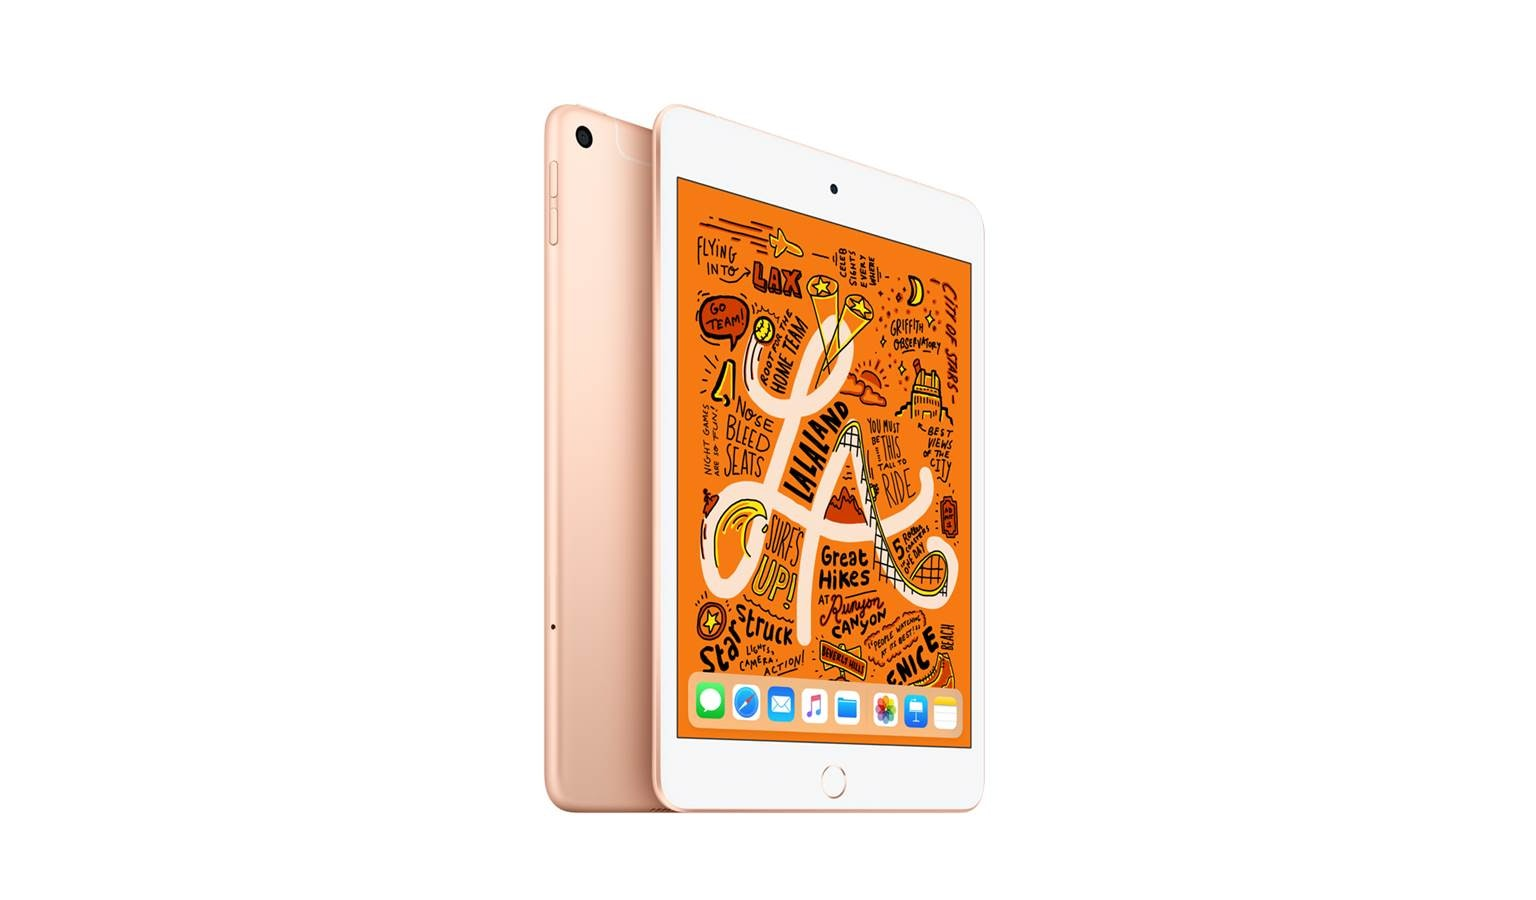 Apple iPad Mini 4G (64GB) - Gold (Front)